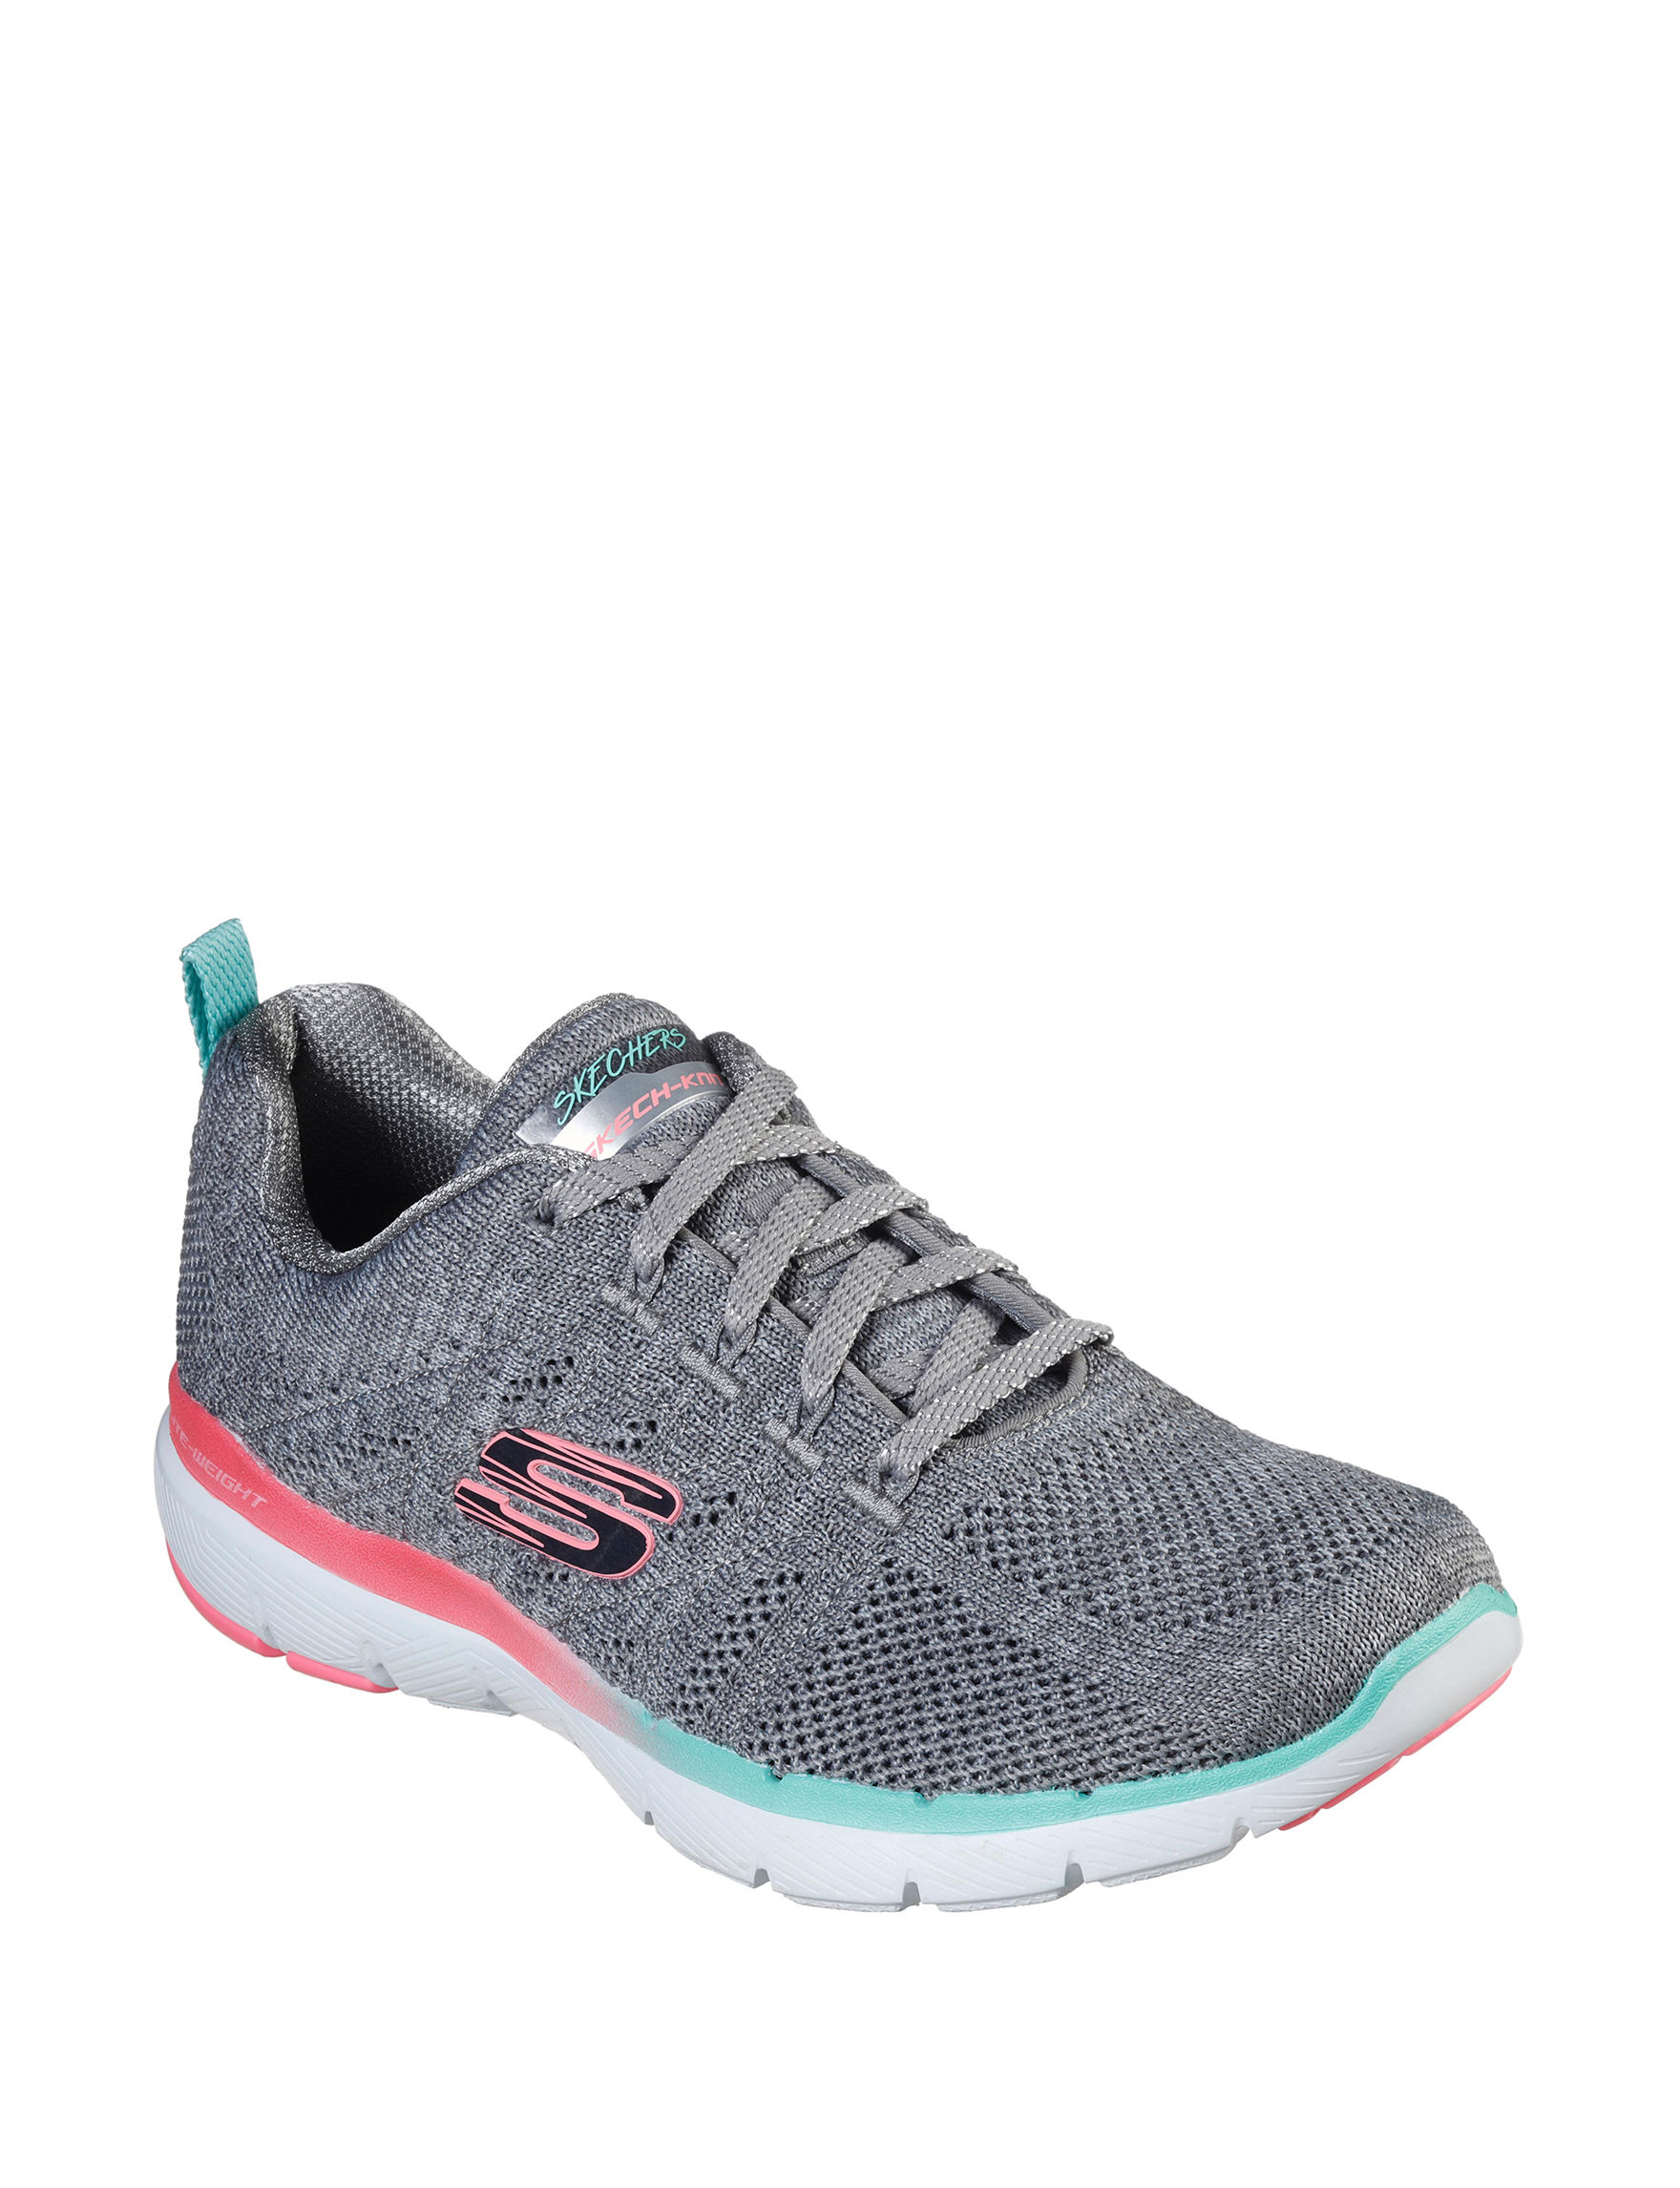 Skechers Grey Comfort Shoes